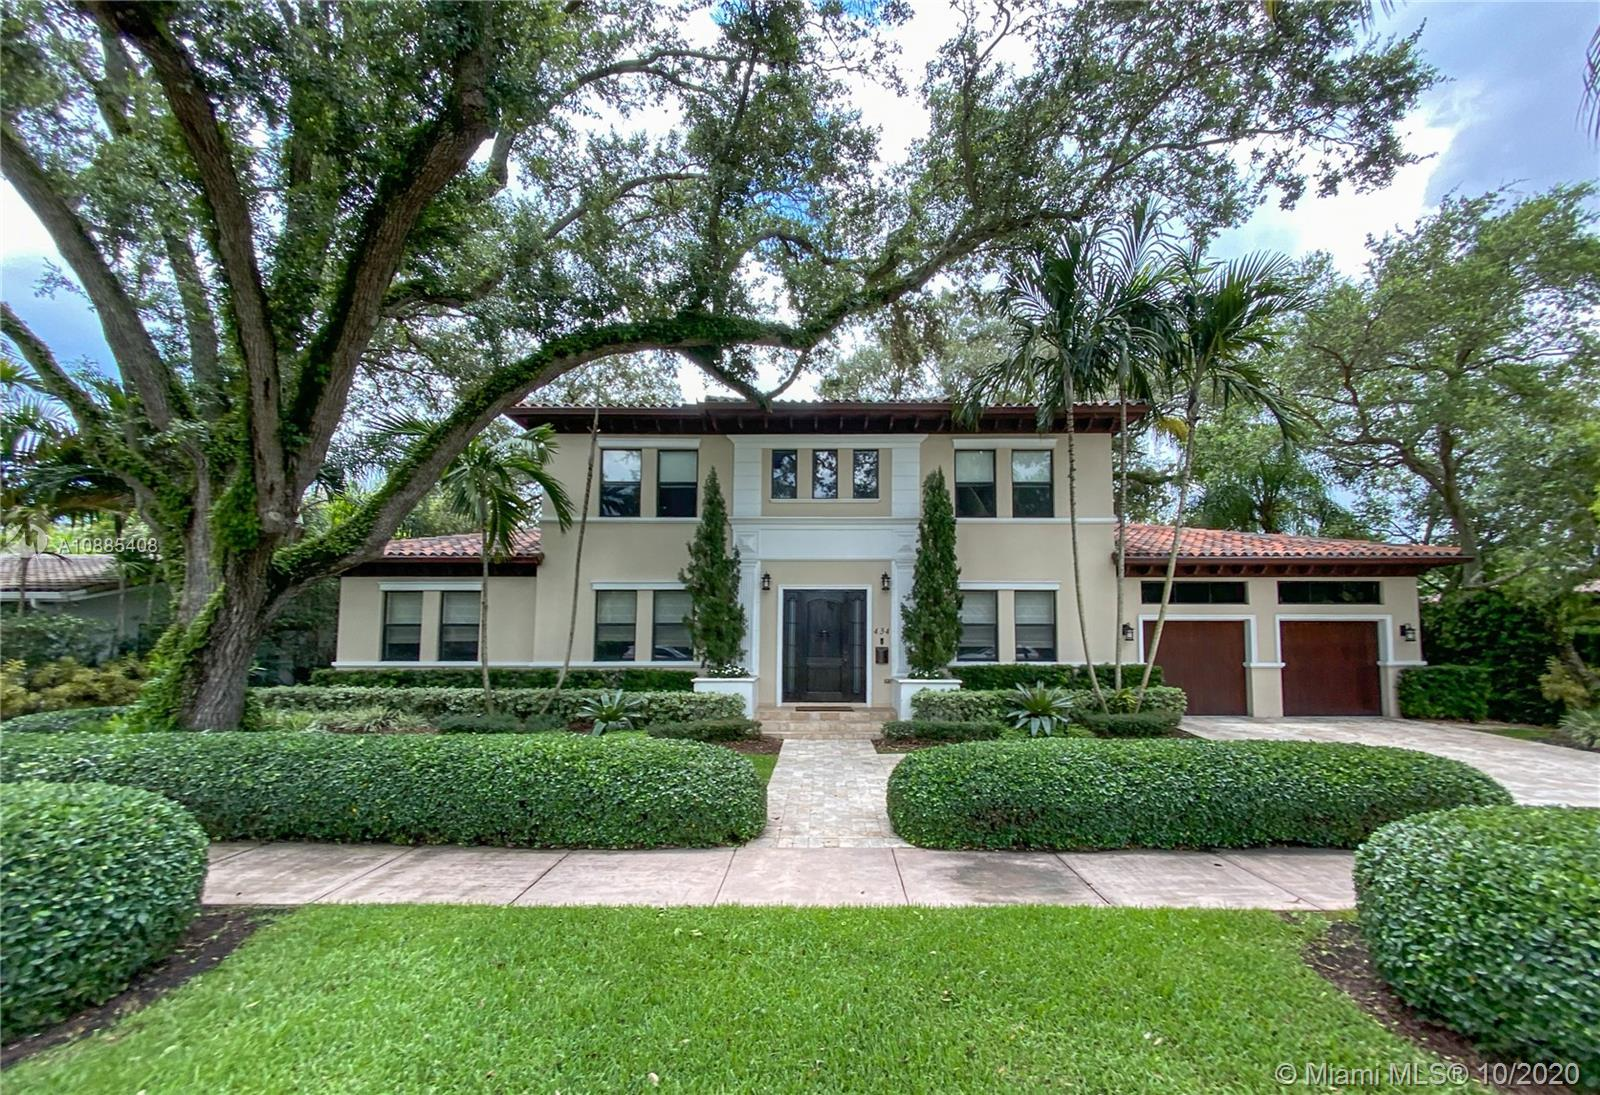 Details for 434 Castania Ave, Coral Gables, FL 33146